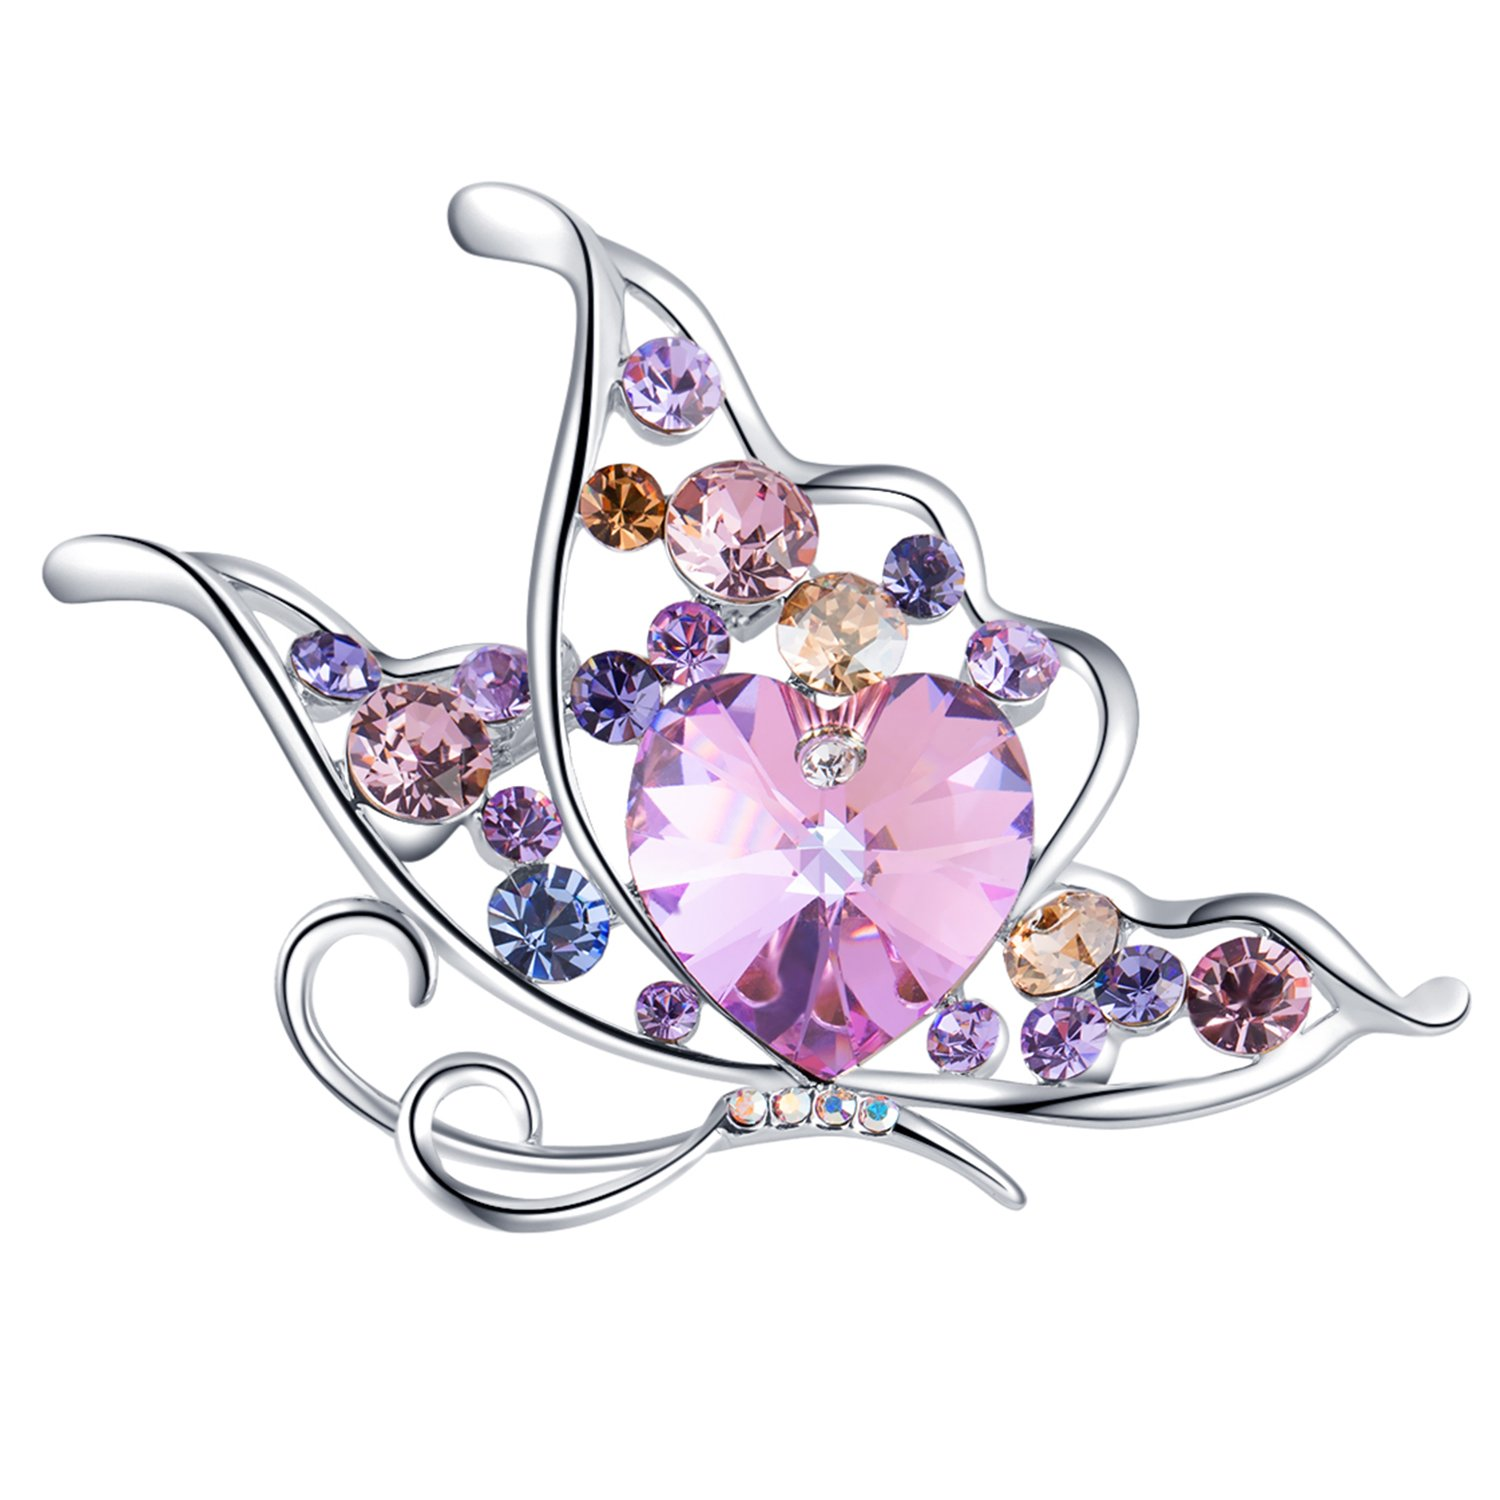 RAINBOW BOX Butterfly Brooches for Women, Heart Crystal from Swarovski Jewelry Brooch Pins for Girlfriend Mom Her Valentine Christmas Birthday Gift (Purple)